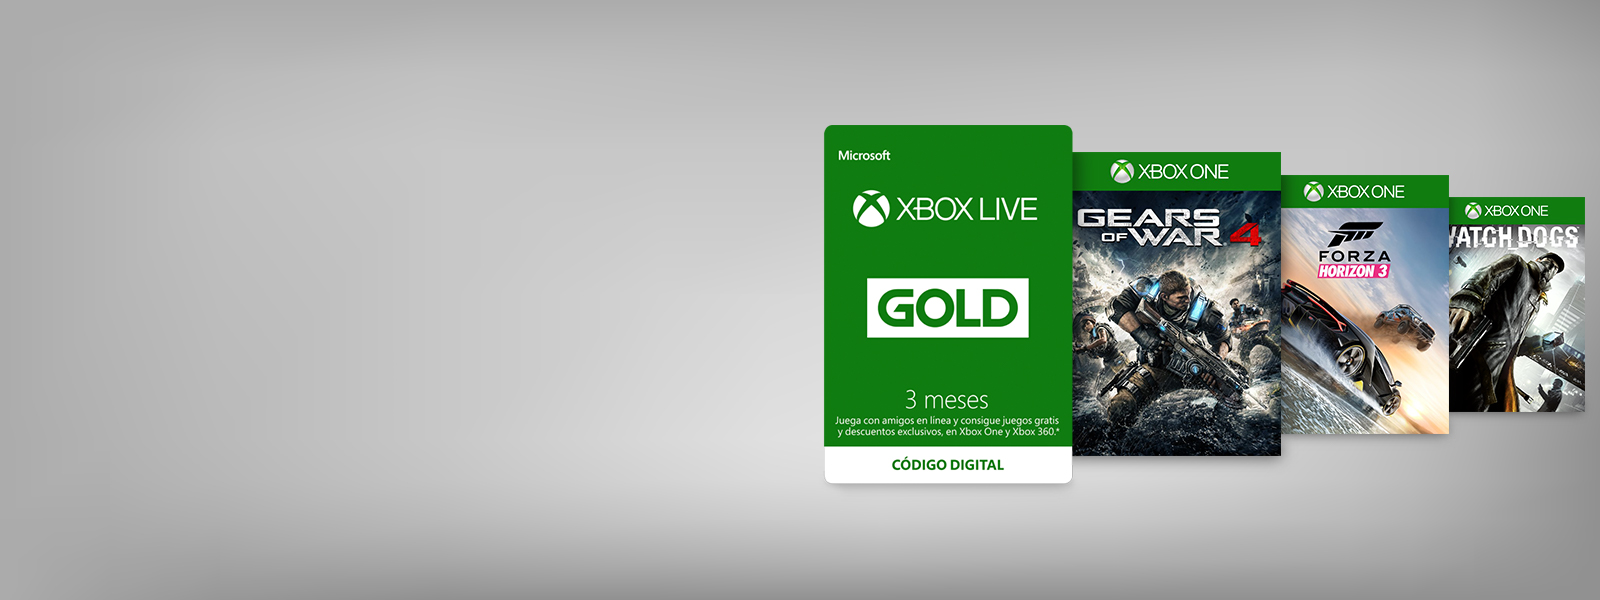 Xbox Live Gold 3 Month Subscription card and 3 Xbox One games